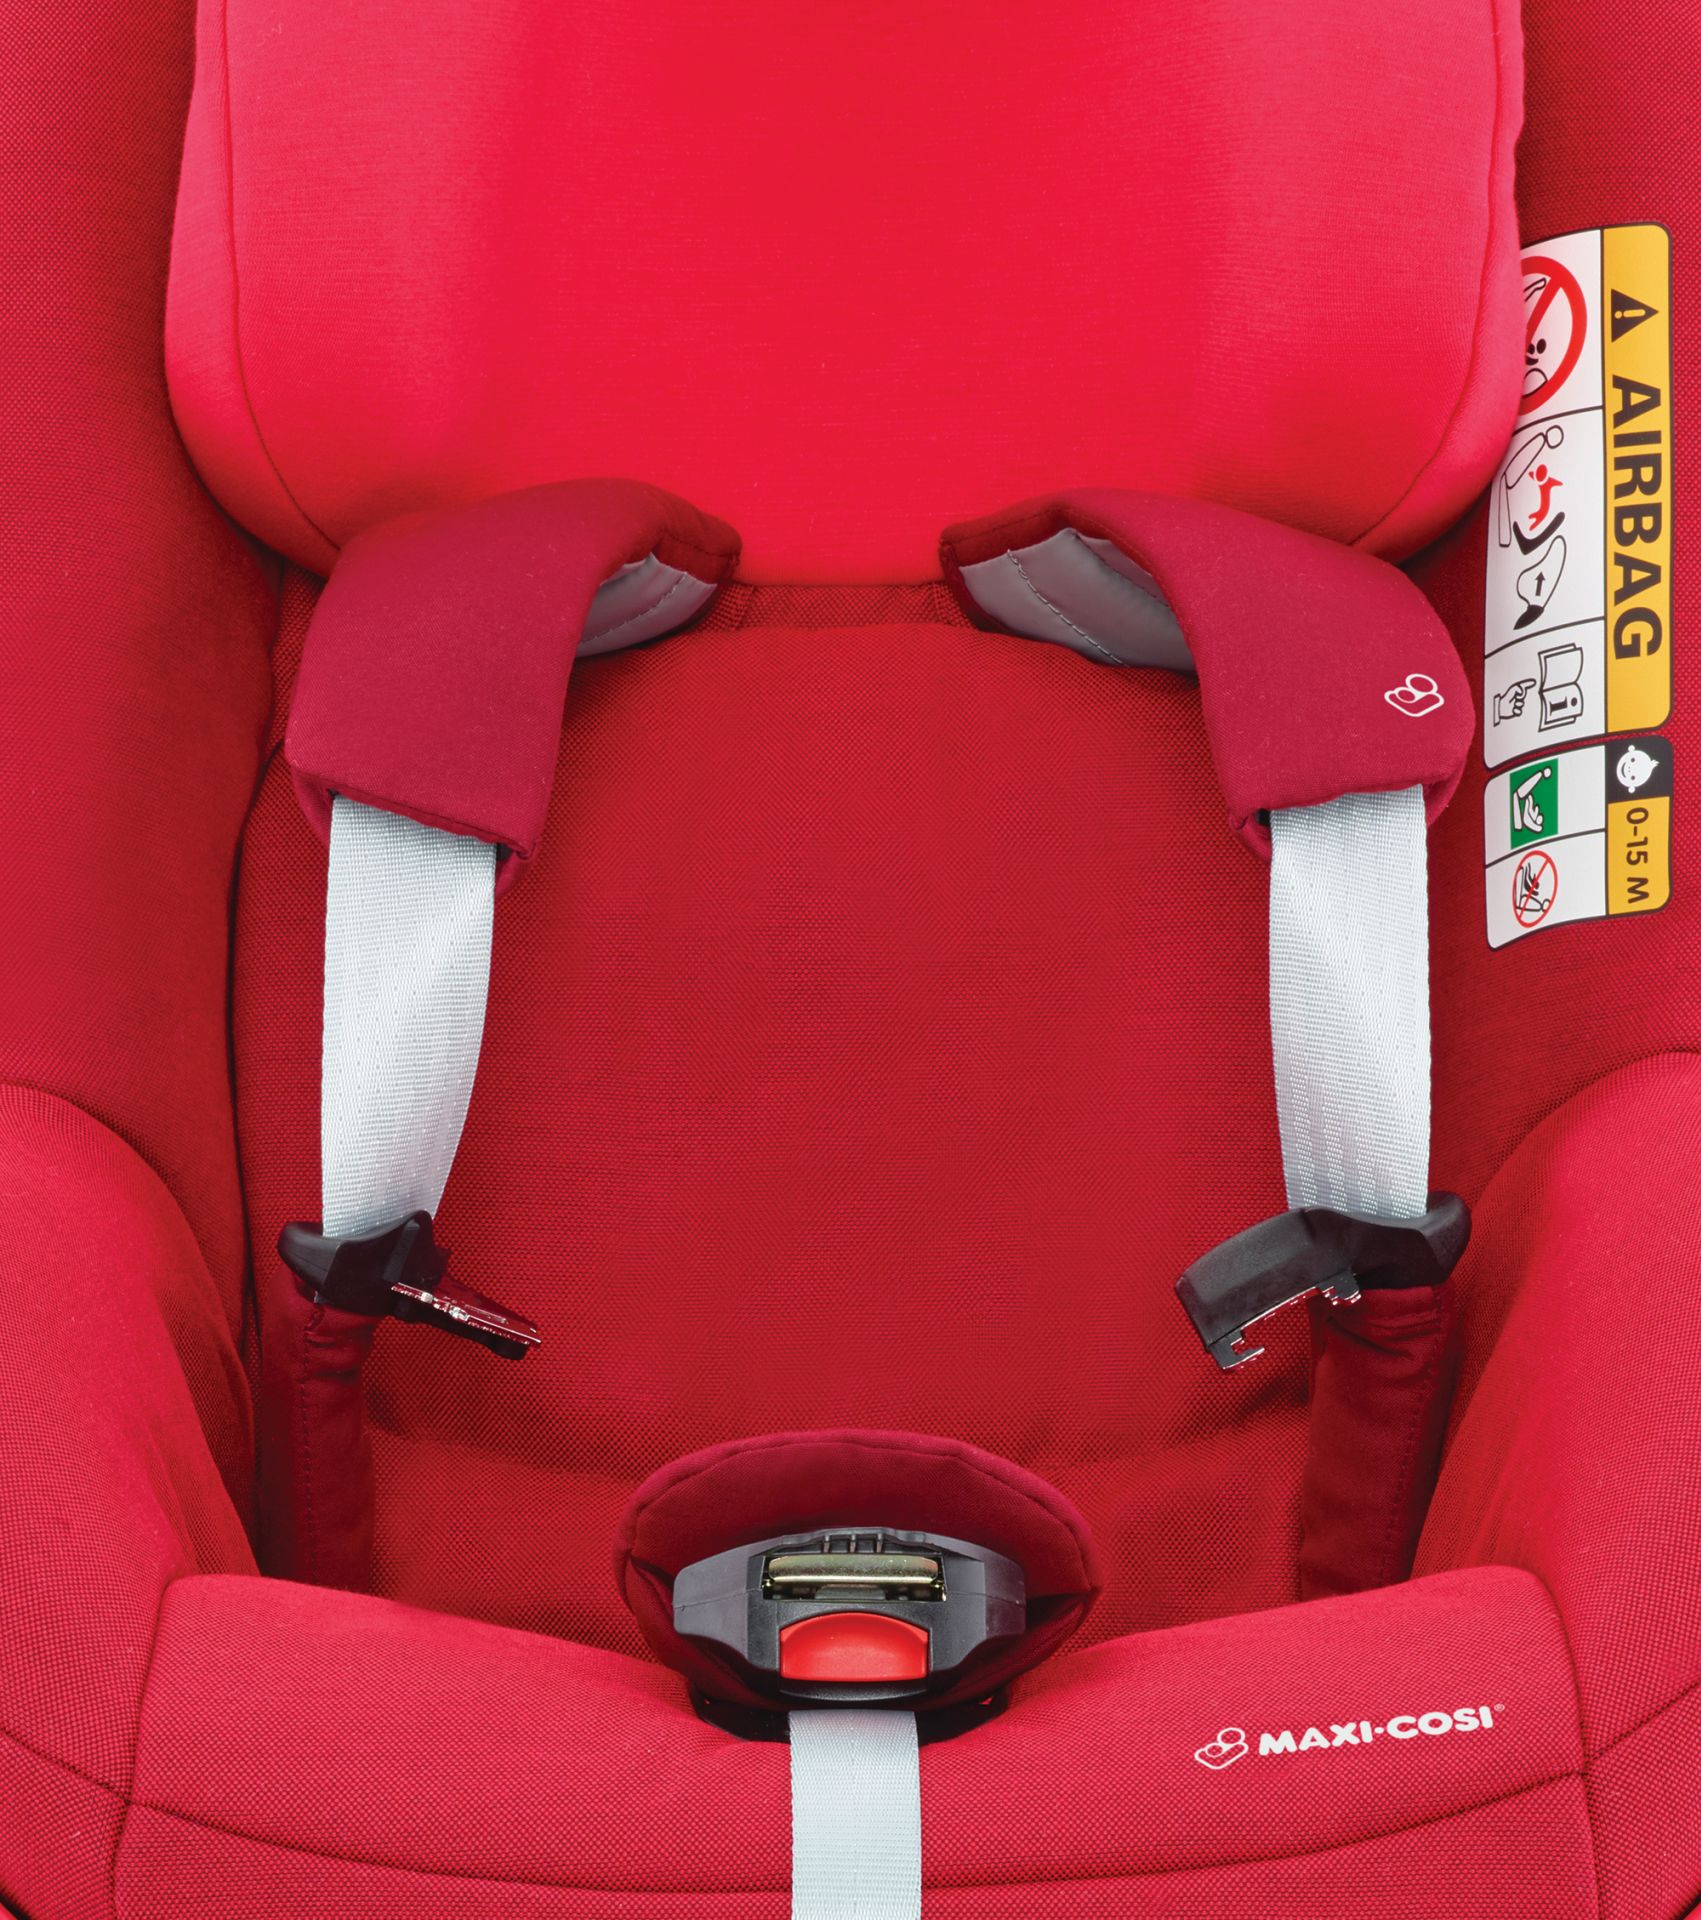 maxi cosi child car seat 2way pearl 2018 vivid red buy. Black Bedroom Furniture Sets. Home Design Ideas